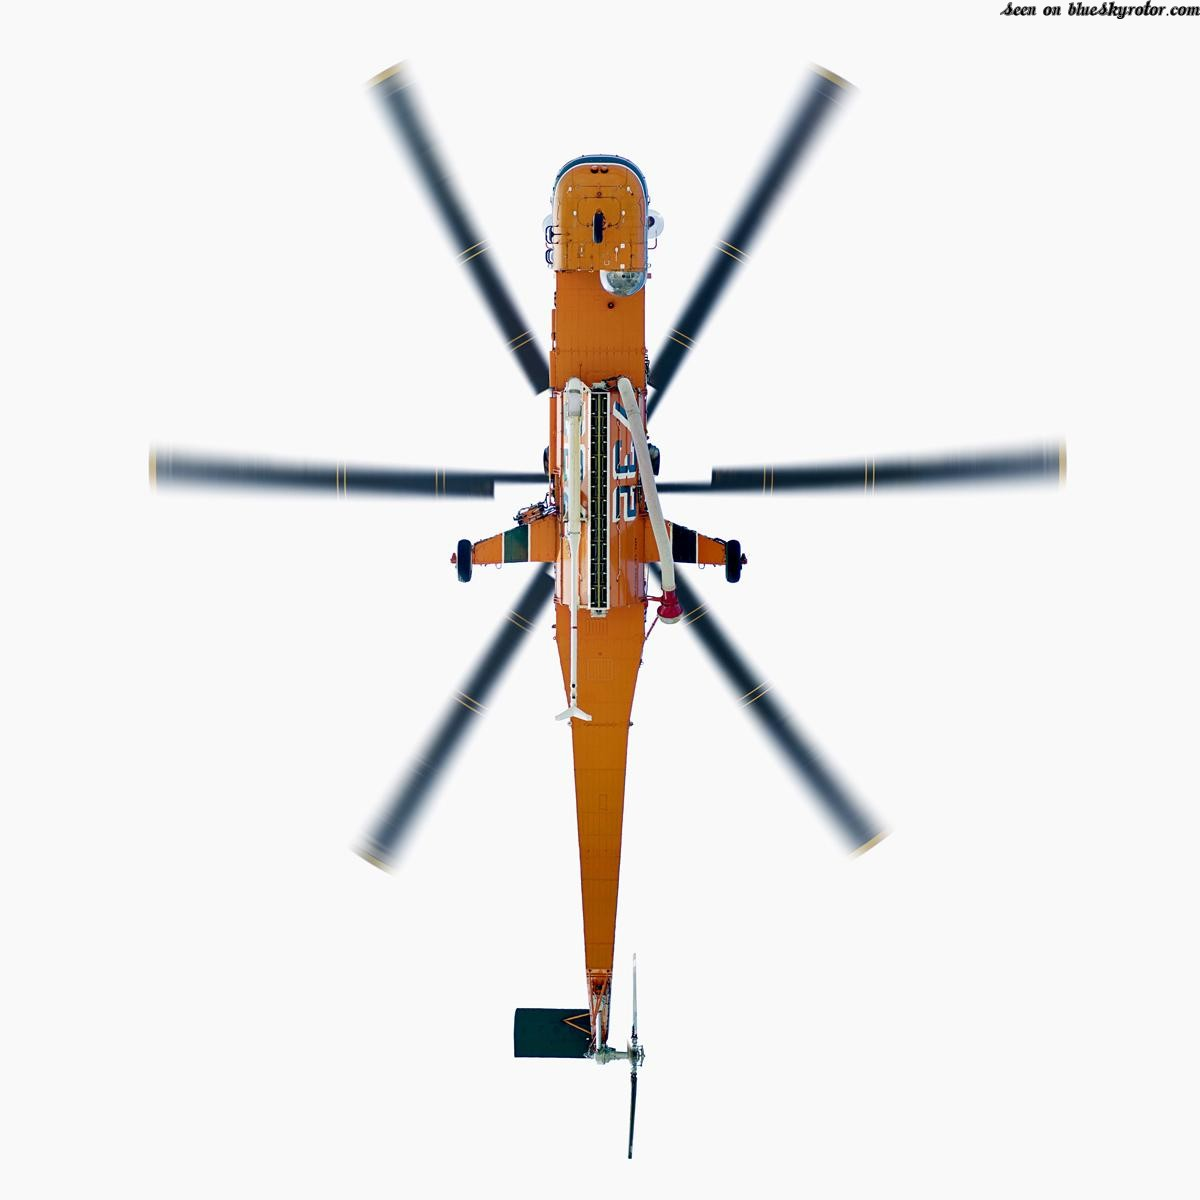 helicycle helicopter with Wallpapers on Manufacturing Issue Caused Turbine Failure Helicopter Crash Report besides 325696 Scorpion Helicopter together with Ch 7 Angel Helicopter Evolution further RG9clKE6268 moreover 391155662606.